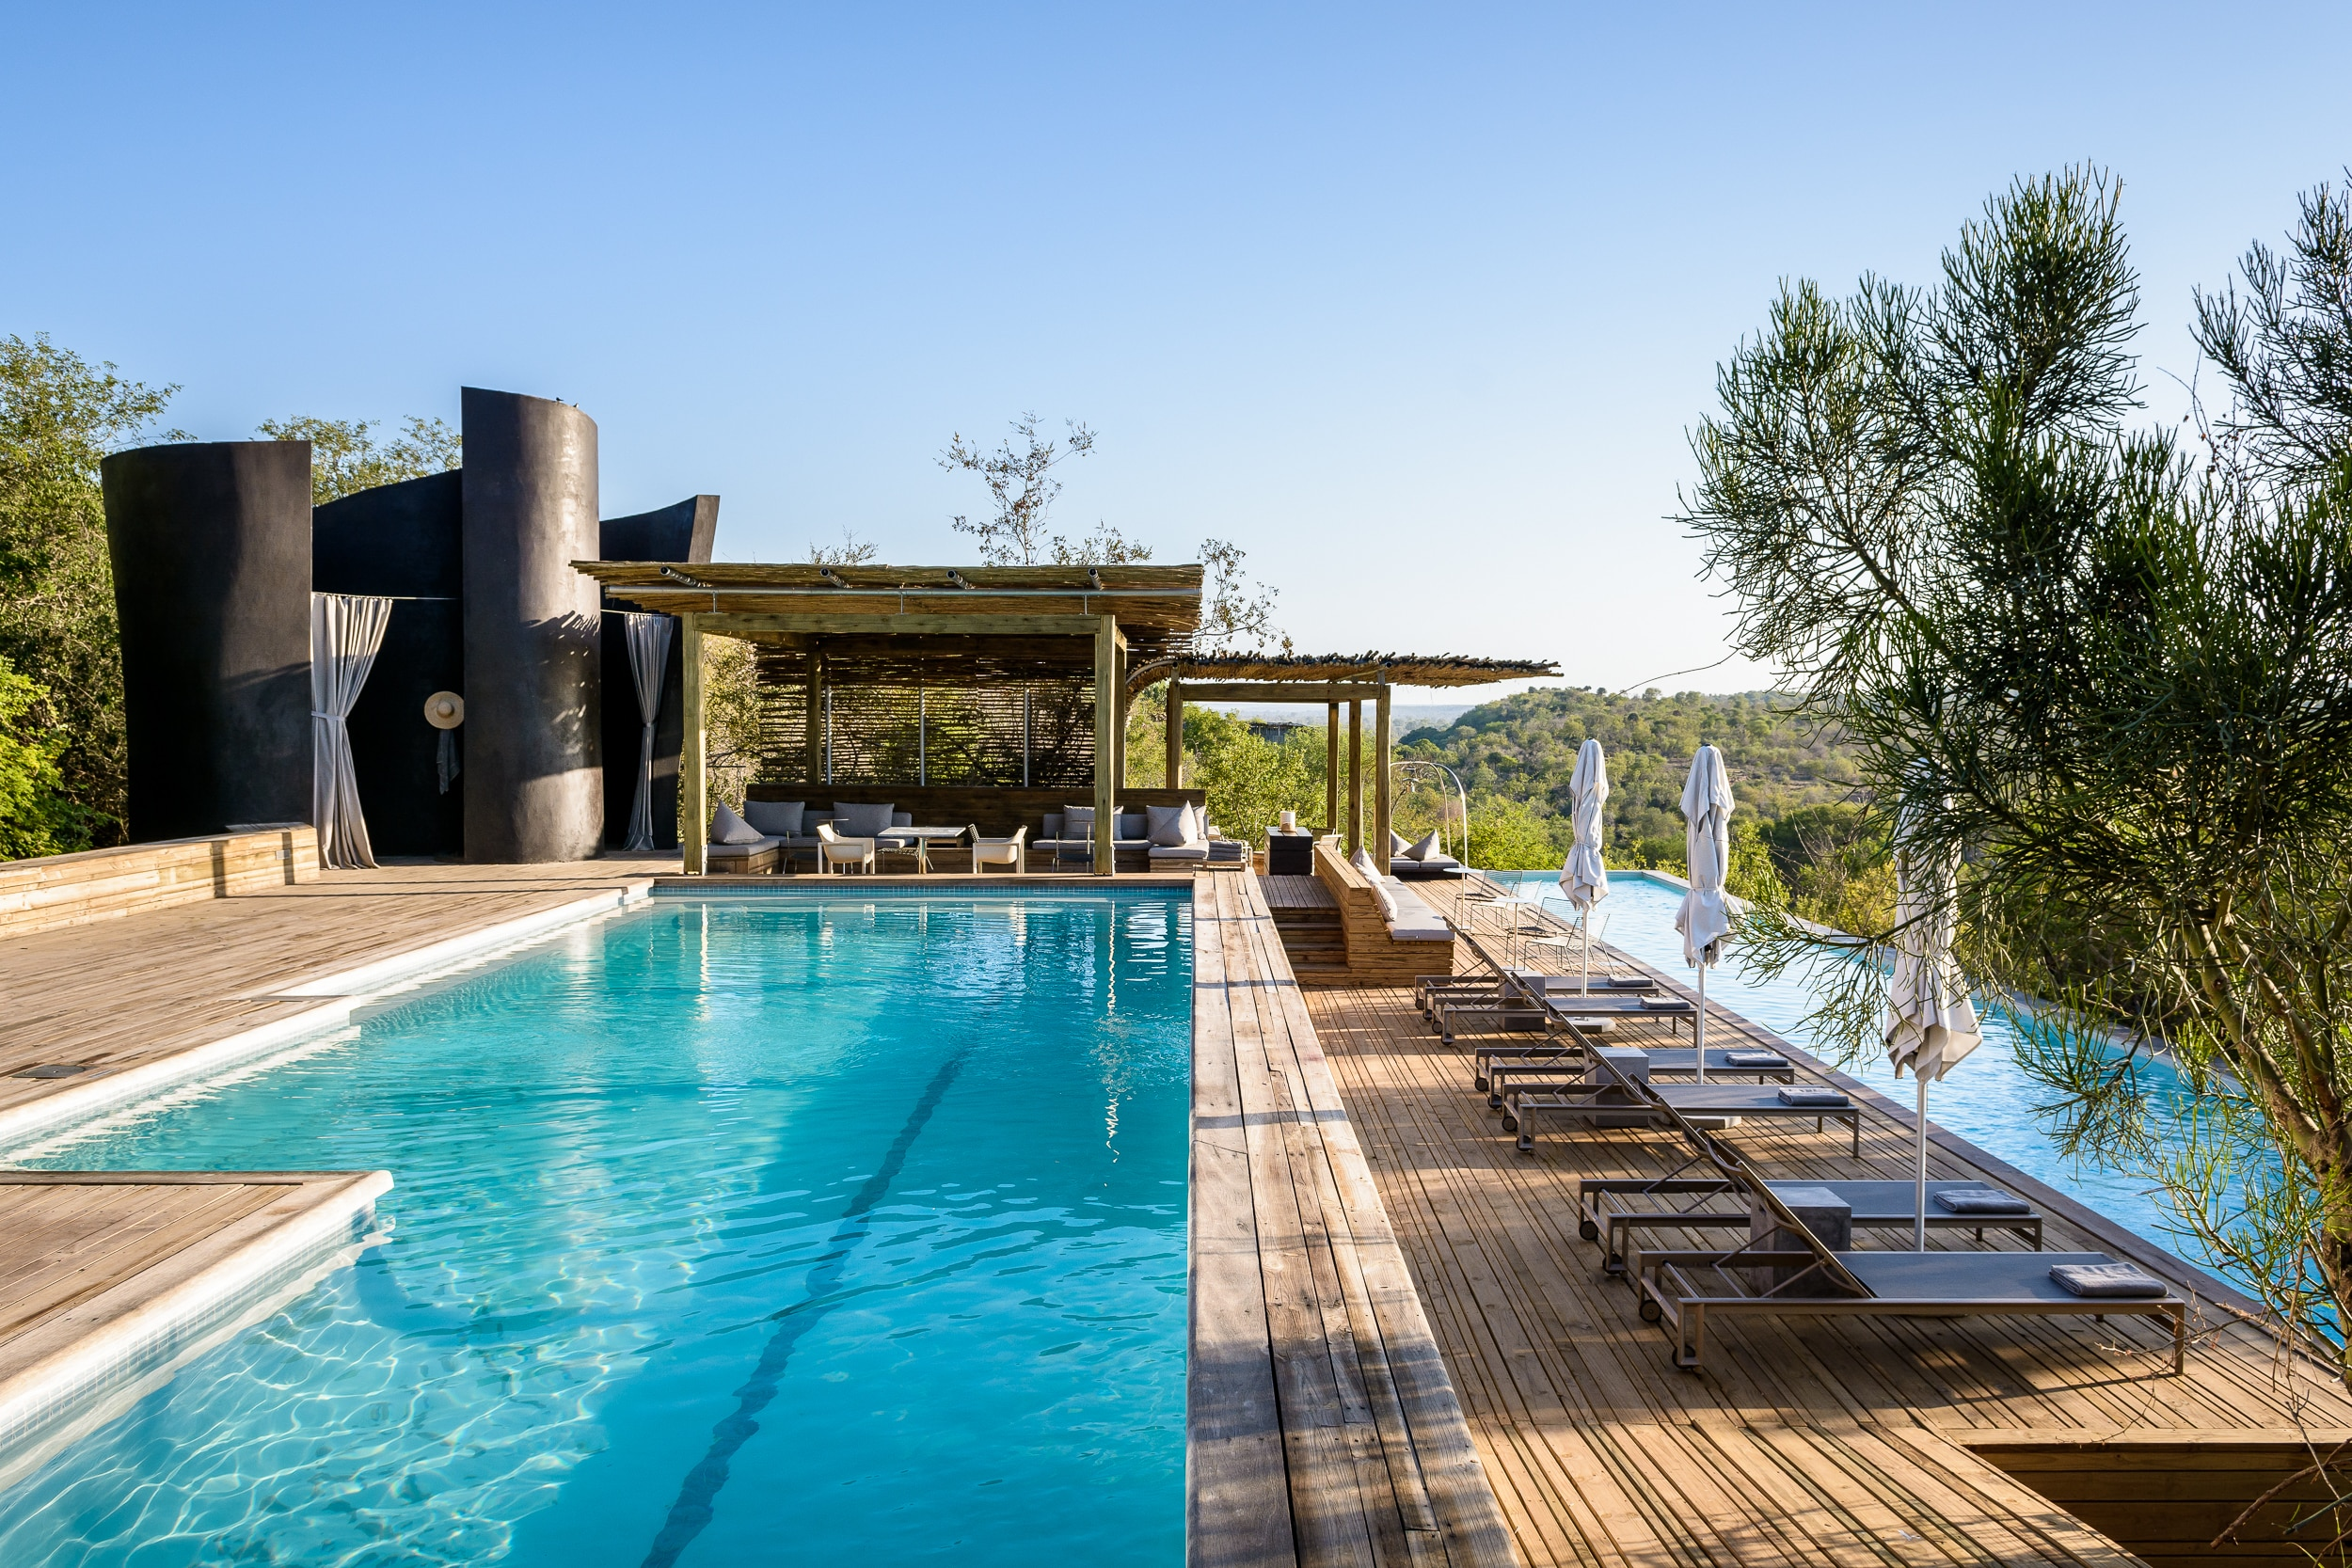 Pools at Singita Lebombo